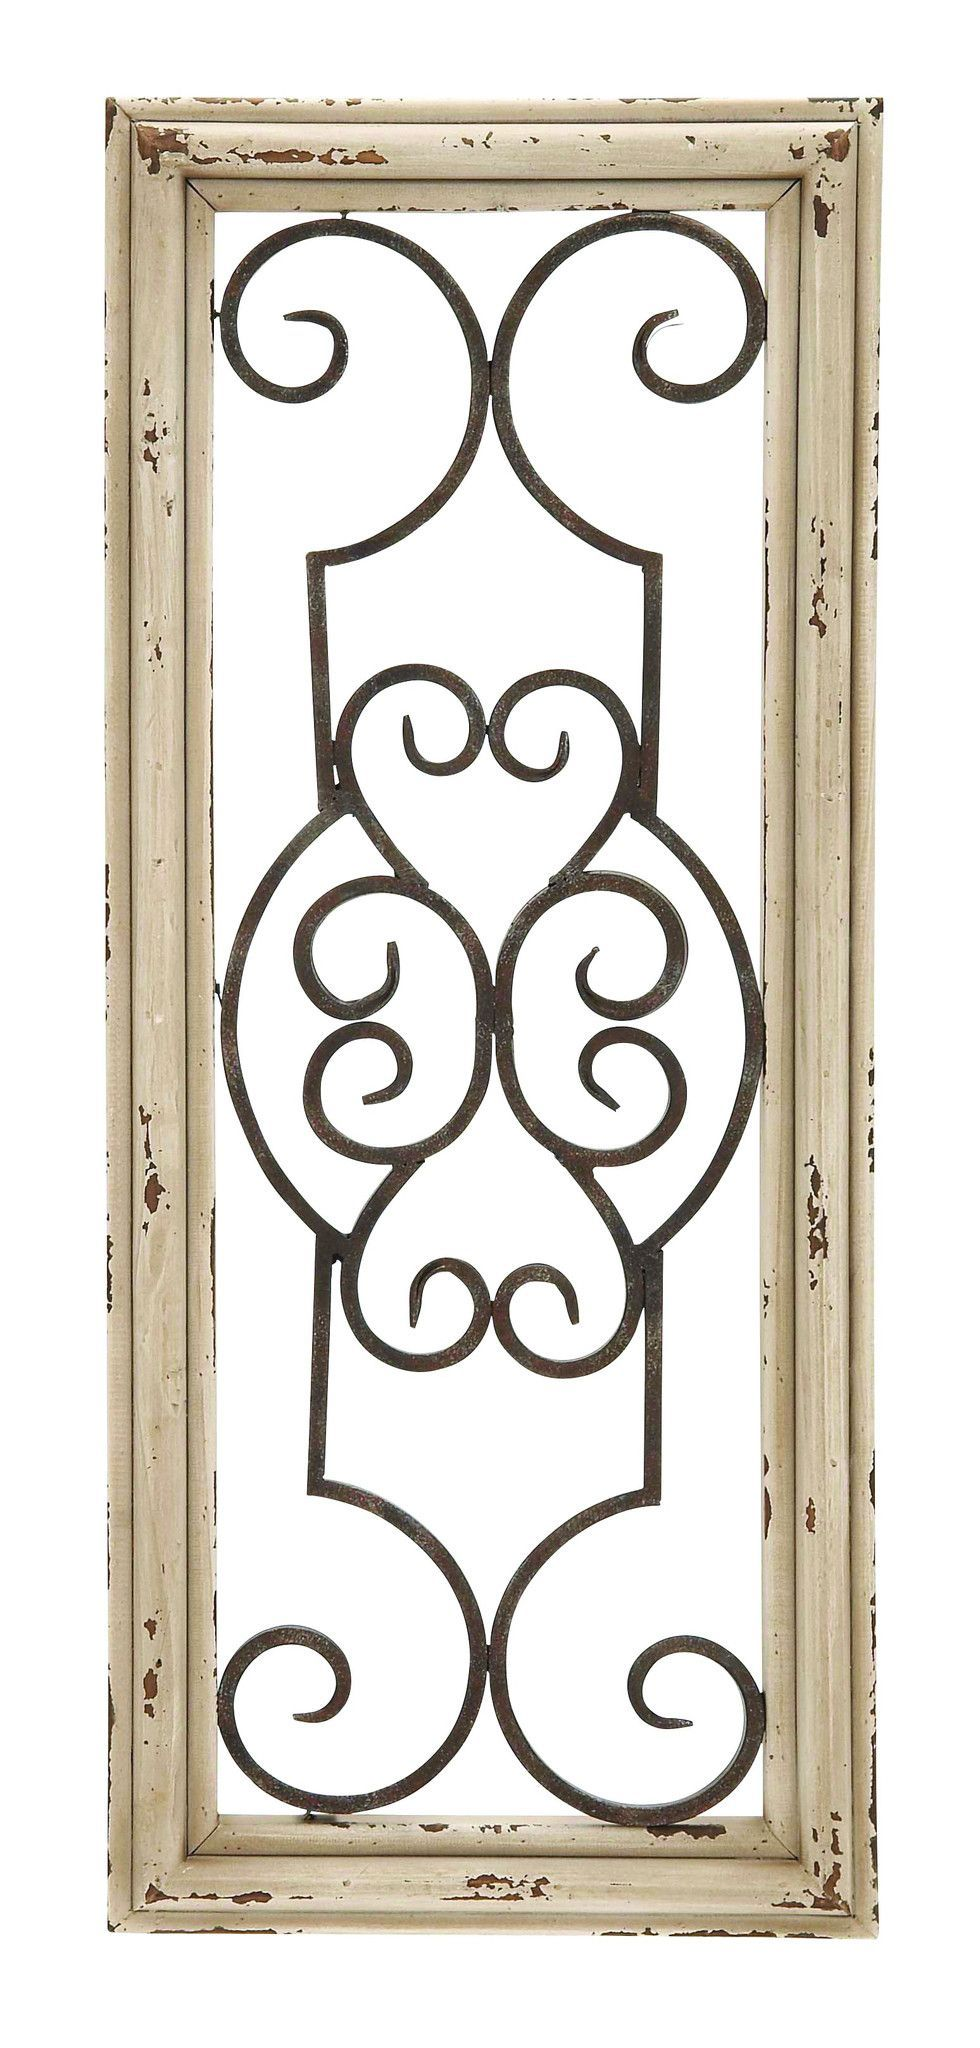 Wood And Metal Door Wall Decor Amazing Size 10 Wide X 1Depth X 25 High Inches *material Quality Metal Design Inspiration